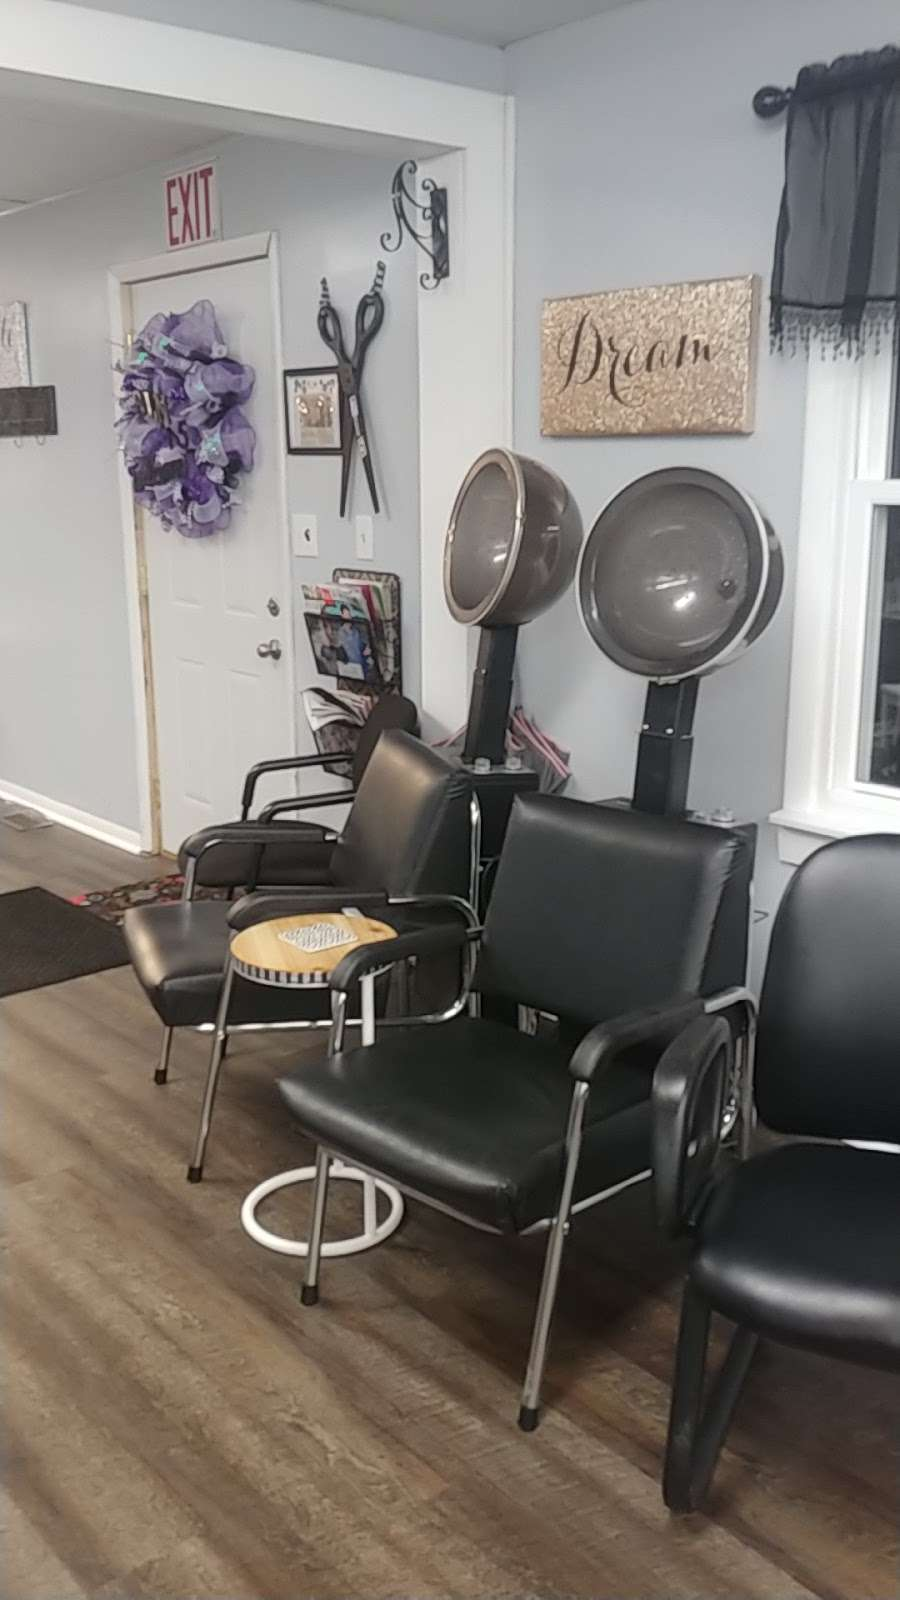 Salon 715 - hair care  | Photo 1 of 10 | Address: 715 N A St, Elwood, IN 46036, USA | Phone: (765) 552-9247